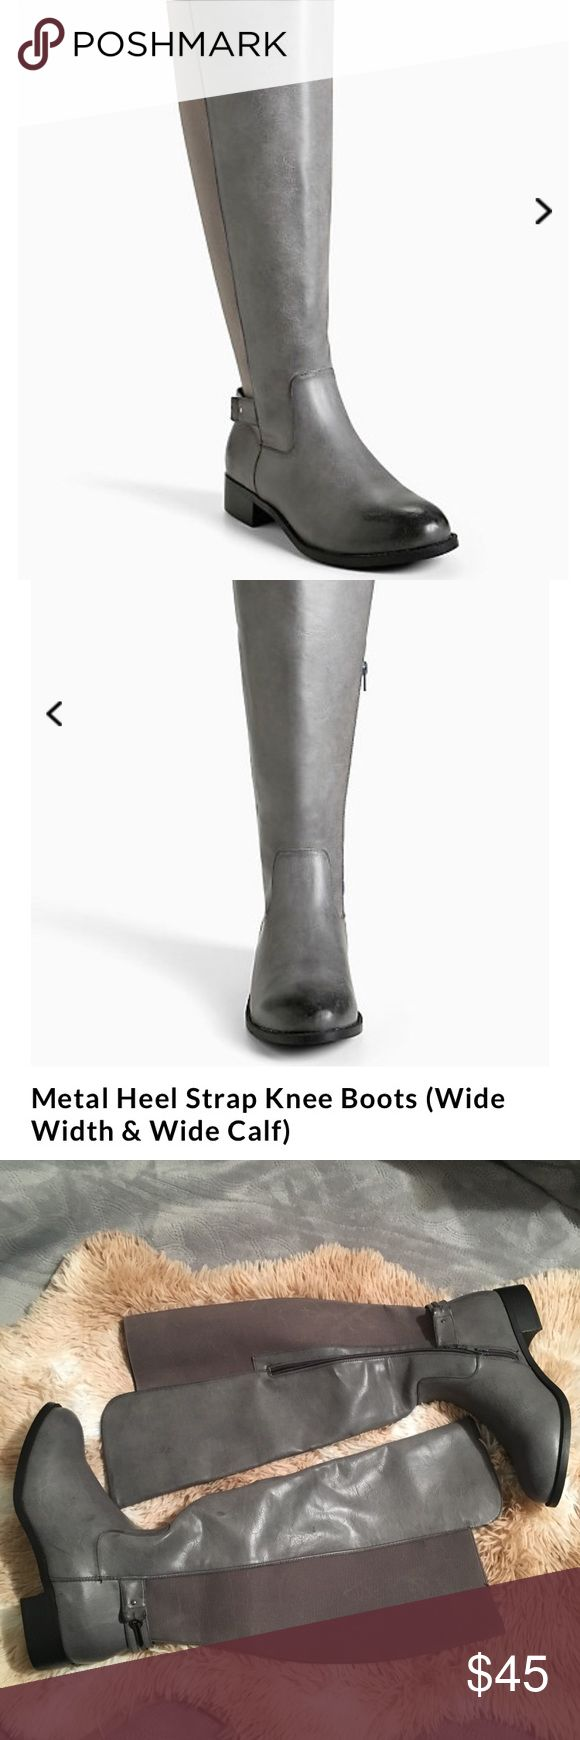 Torrid metal strap knee boots nwt size 9W Torrid knee boots new with tags size 9W. No box. Last pic shoes manufacturer flaw on the stretch part of the boots. Purchased like this maybe part of the design as it is on the material part of these boots torrid Shoes Over the Knee Boots